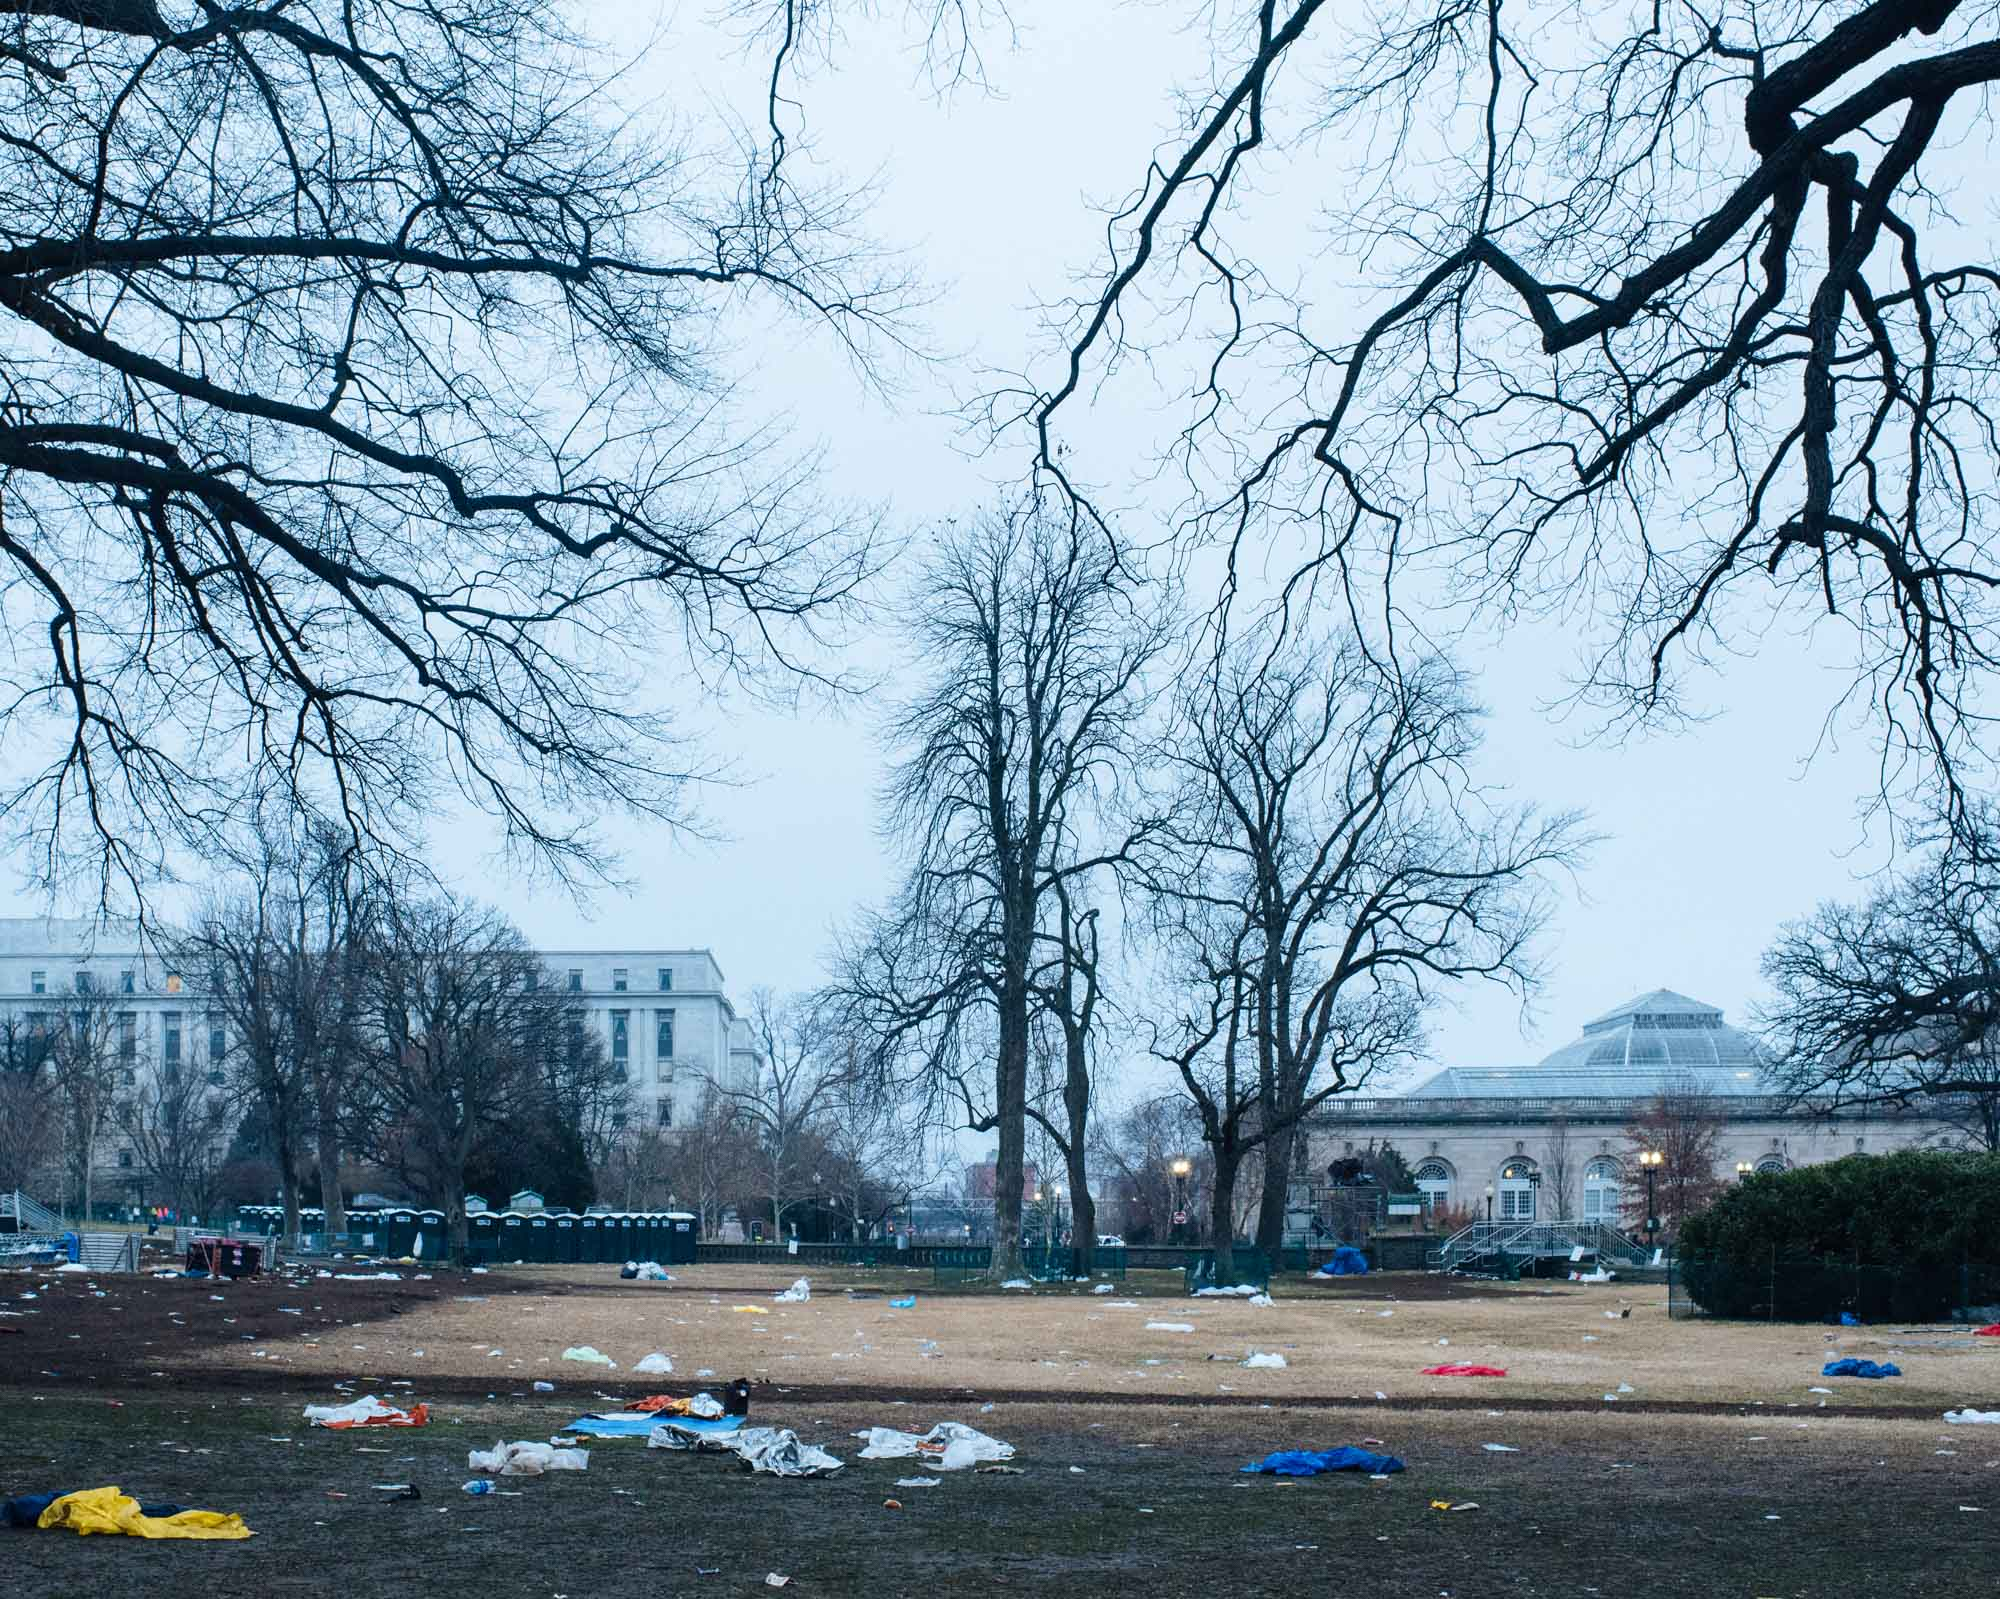 The lawn in front of the Capitol is covered with trash.